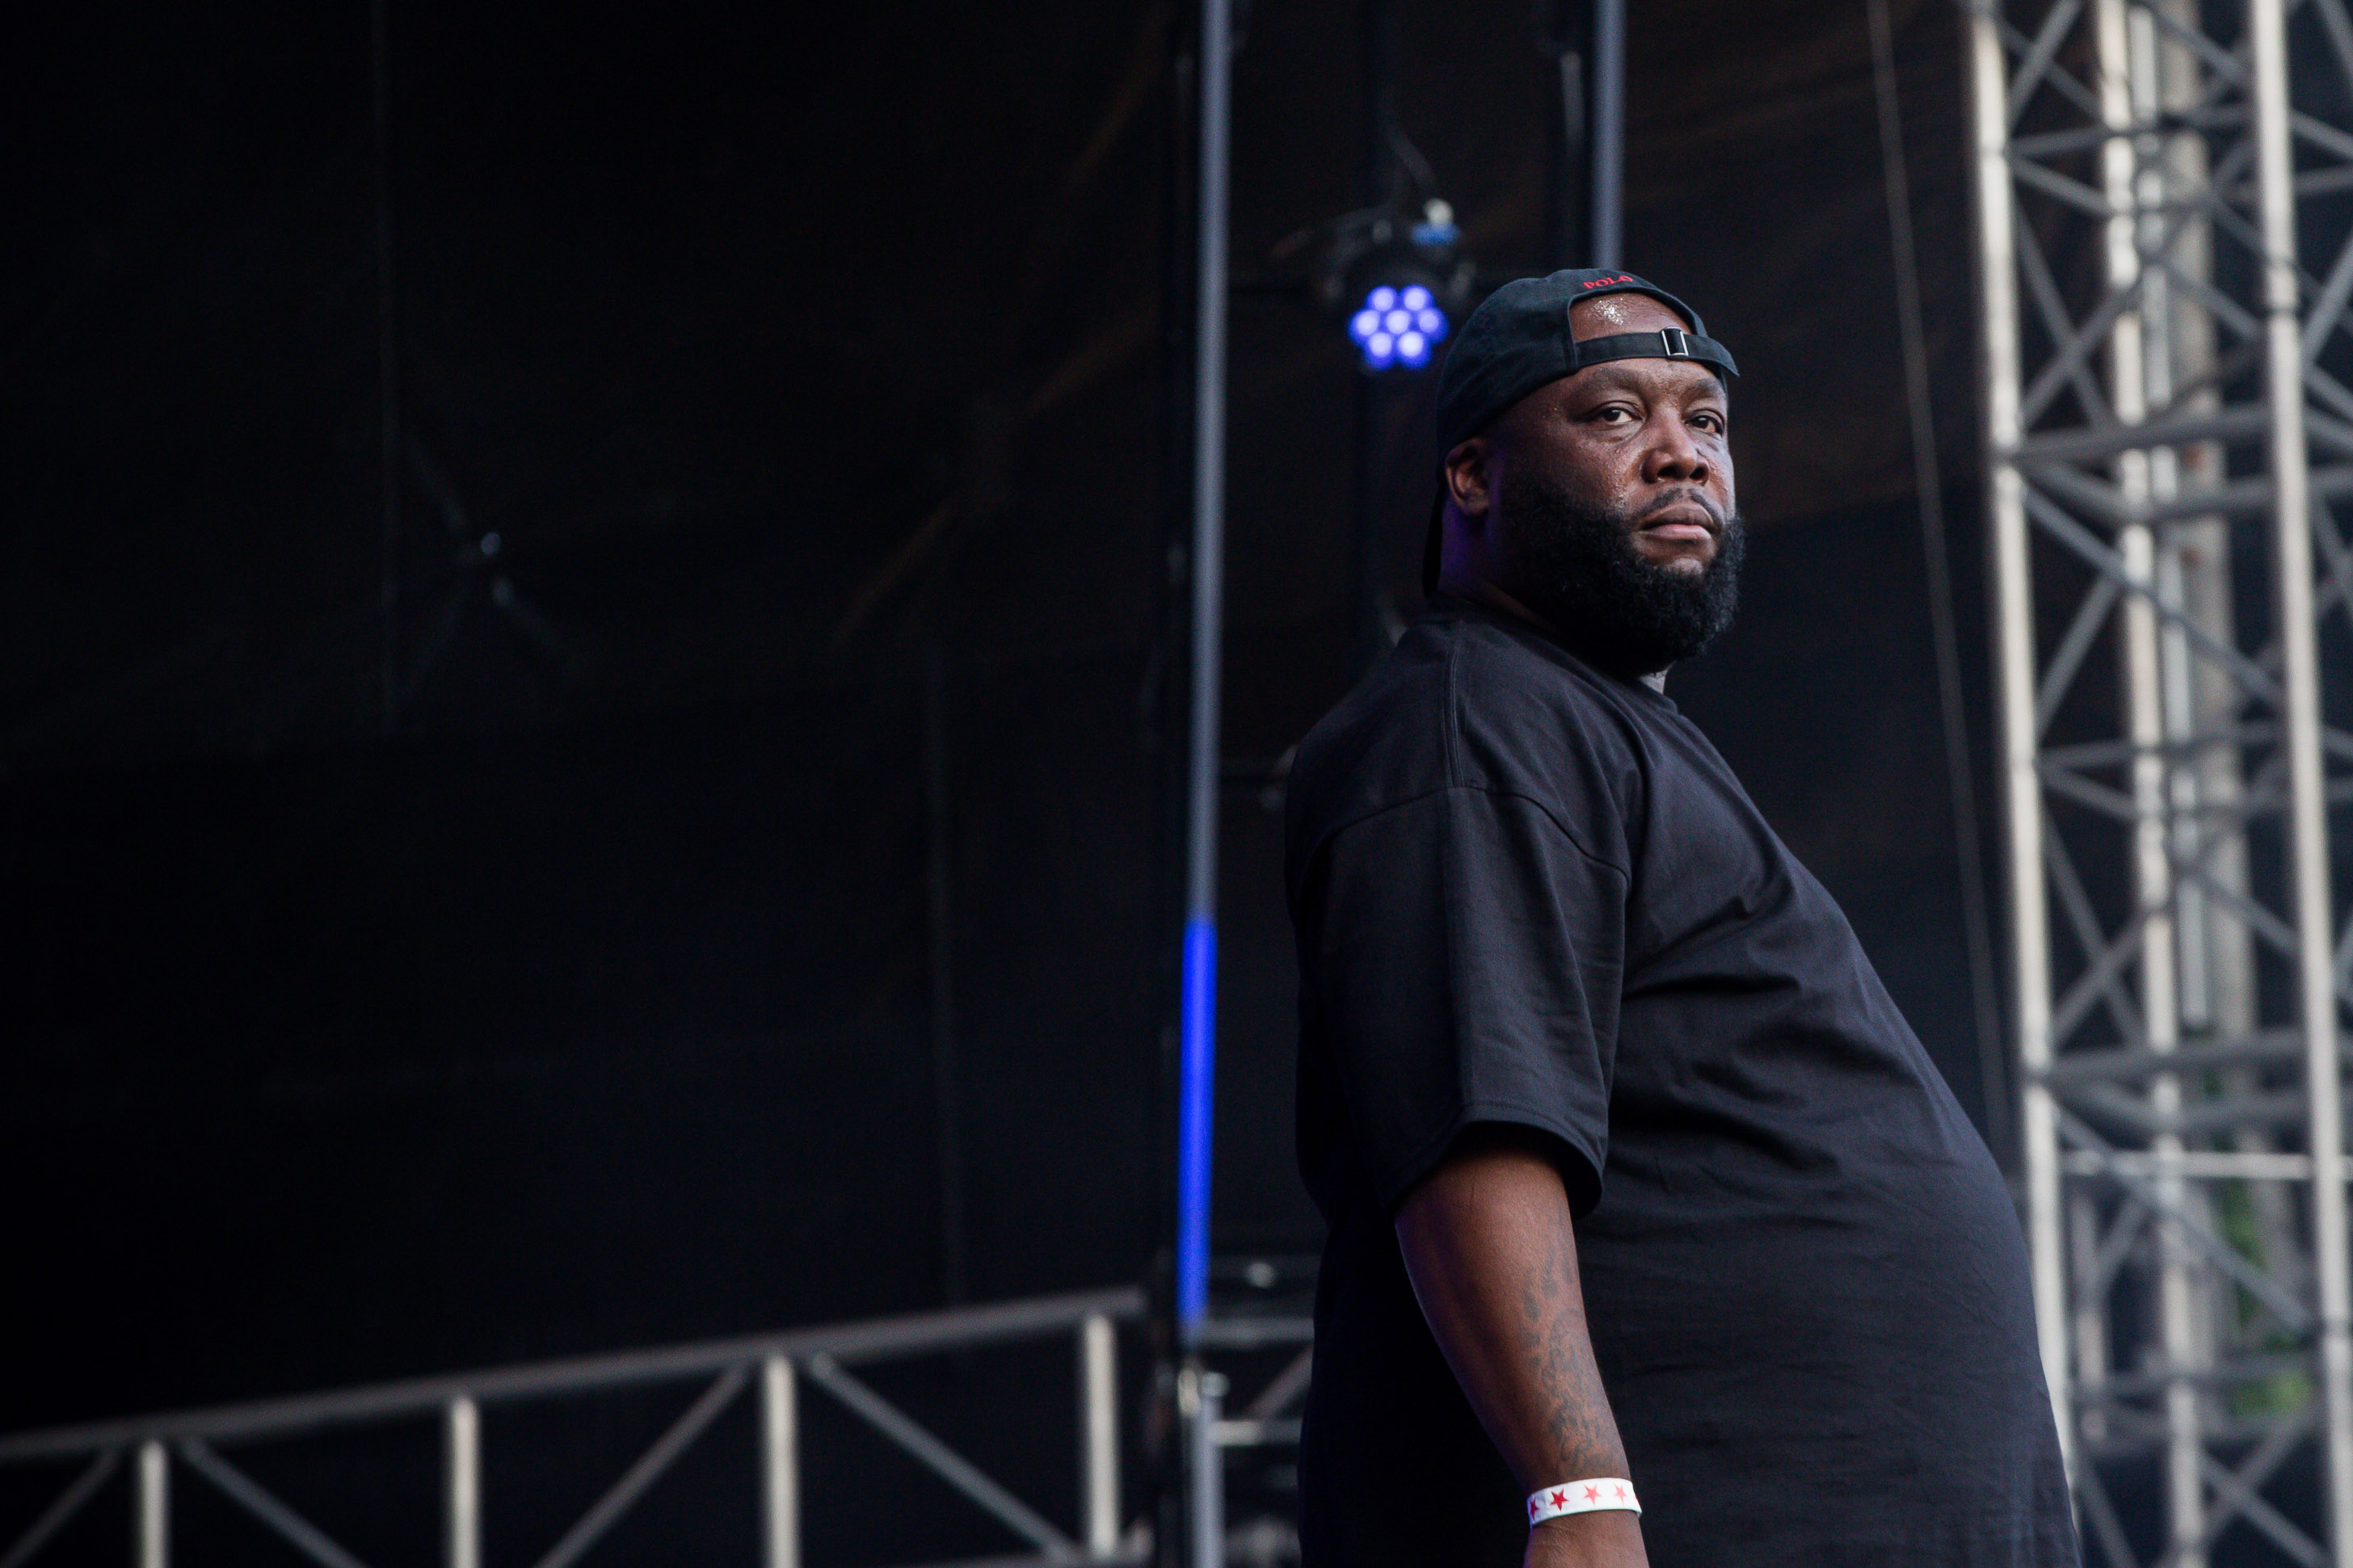 Killer Mike Shares His Thoughts On Lil Wayne, Ice Cube, Kanye West & More